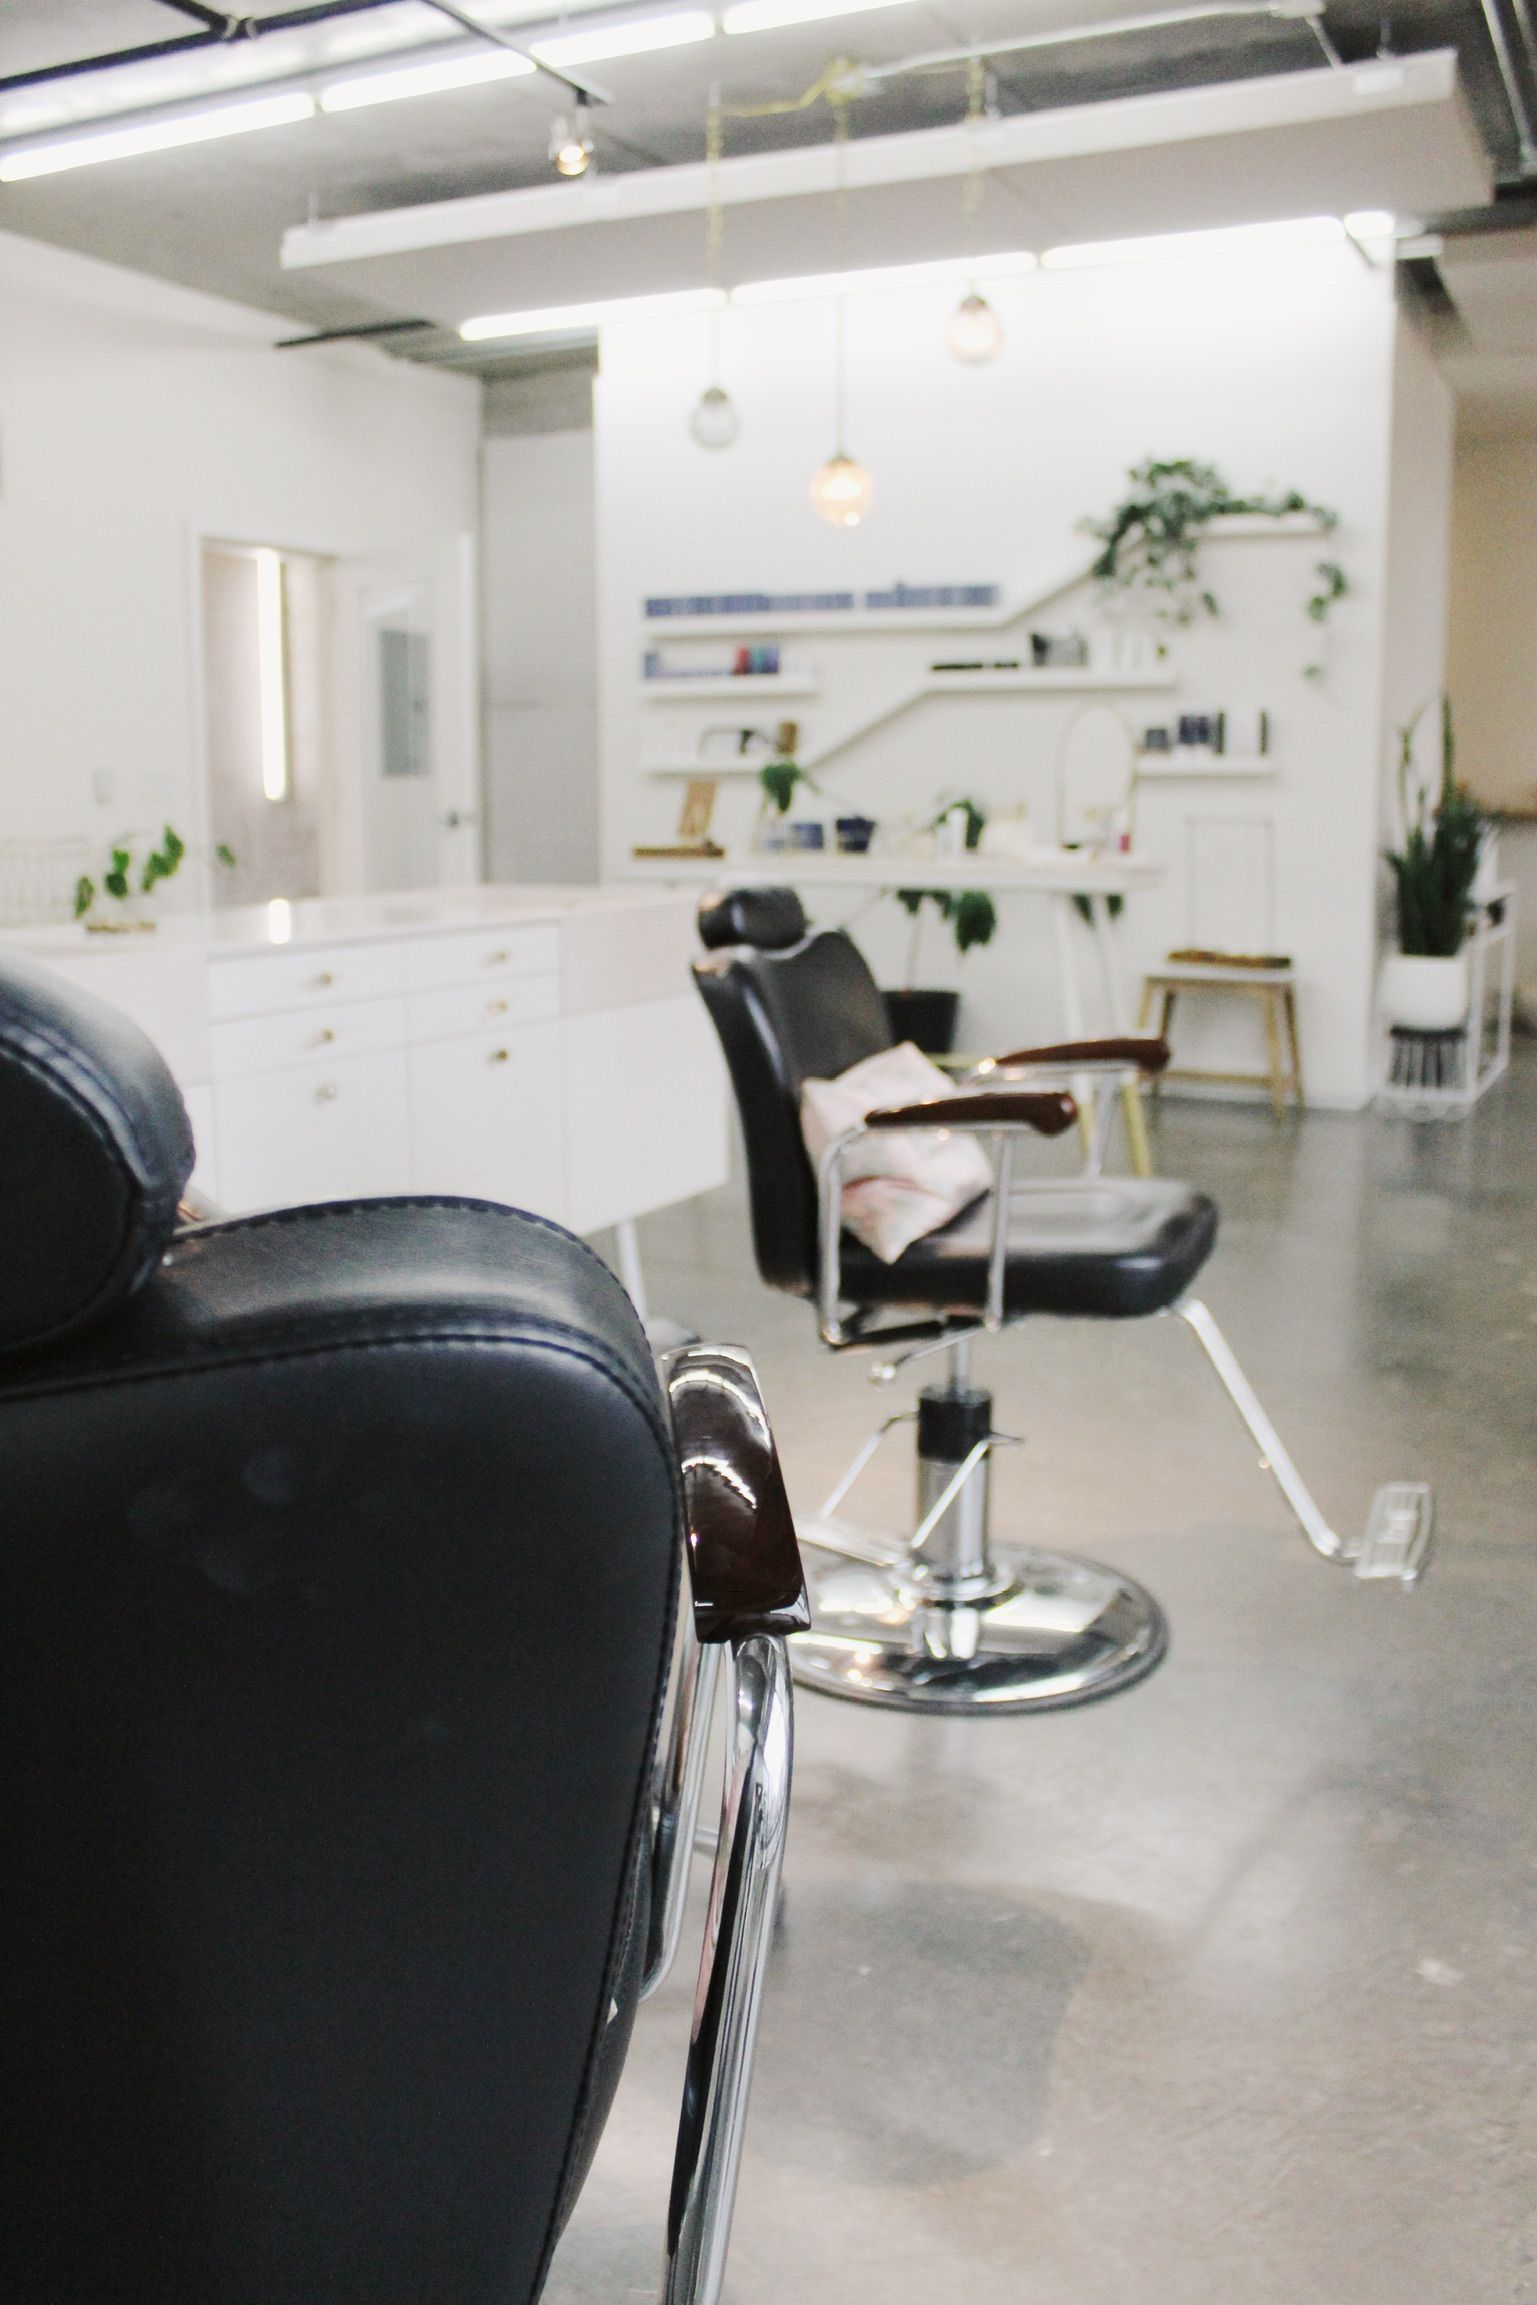 Pin By Beautysessionpdx On Beautysession Space Furniture Home